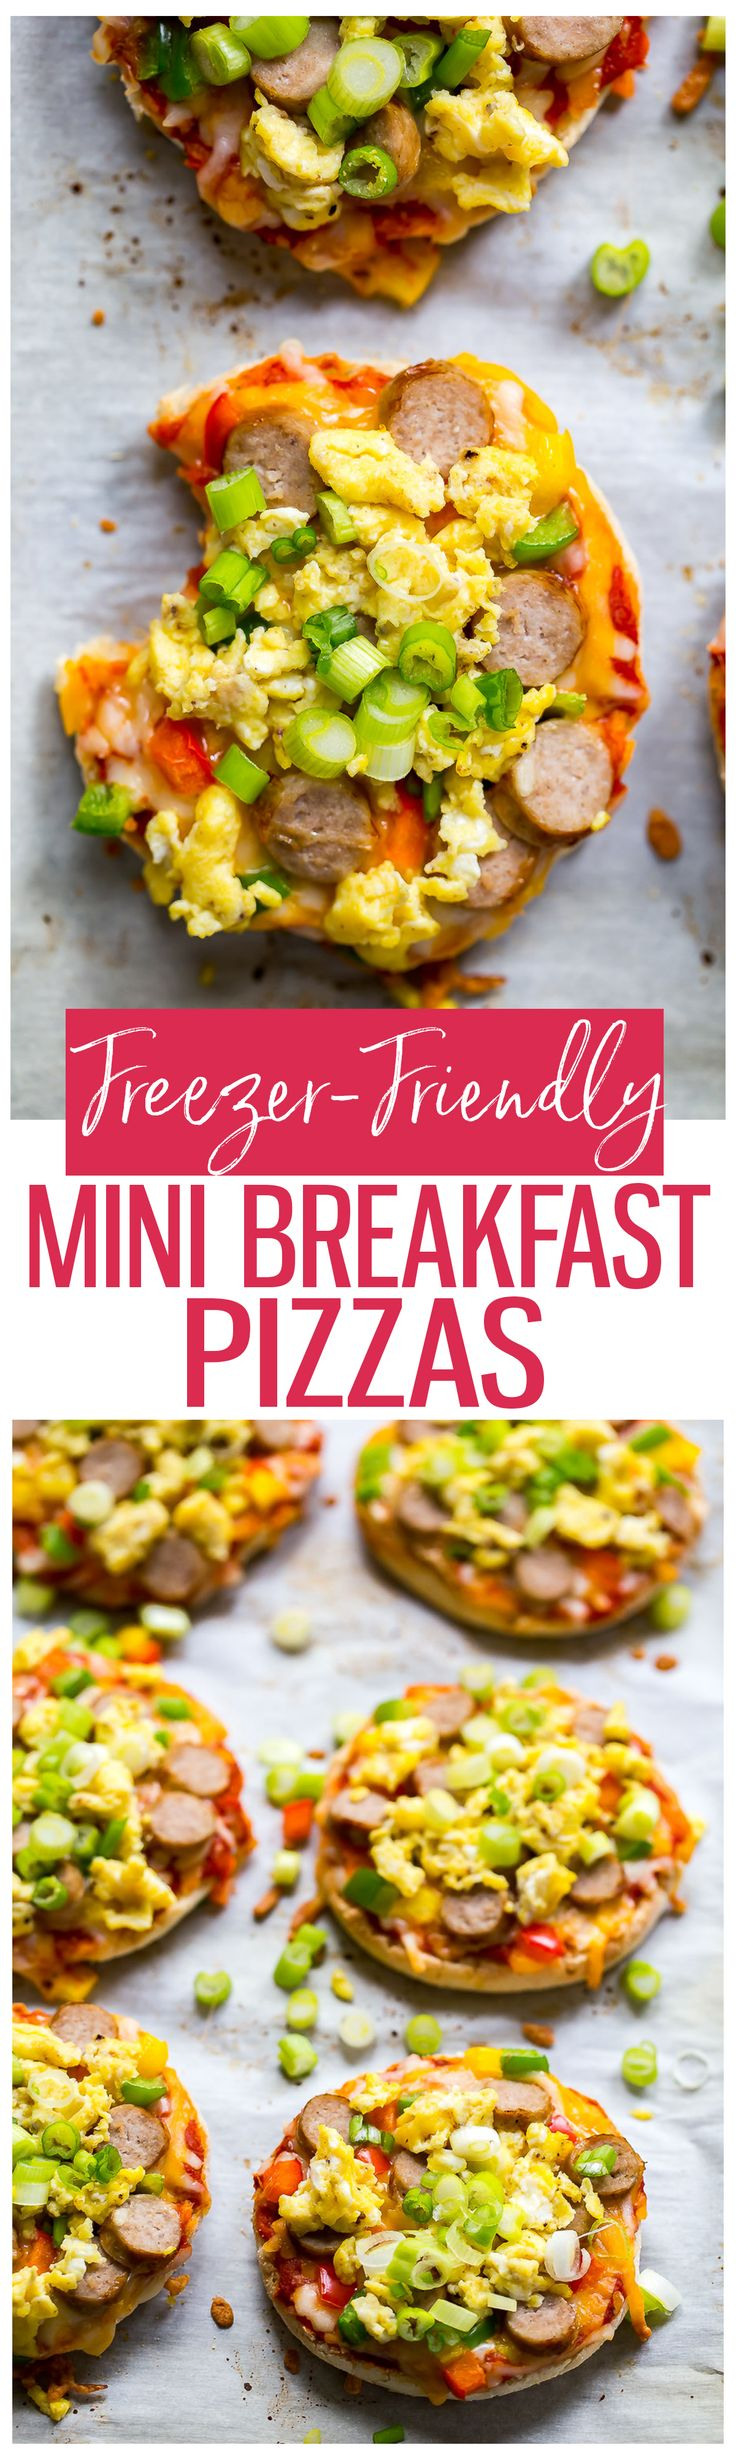 Freezer-Friendly Mini Breakfast Pizzas with turkey sausage and egg are the perfect grab and go option for those busy weekday mornings! Pop one in the microwave and enjoy on-the-go!